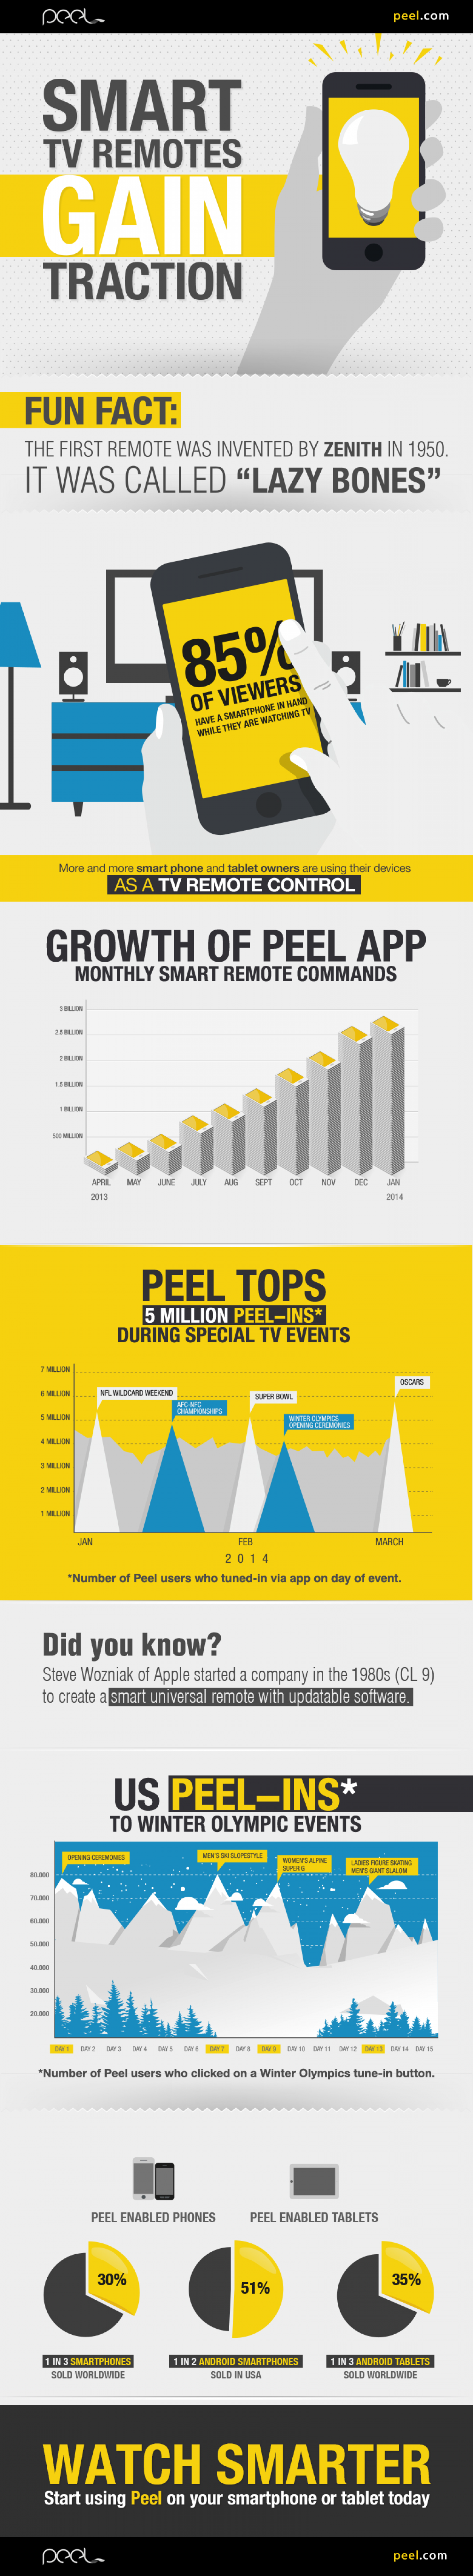 Smart TV Remotes Gain Traction Infographic